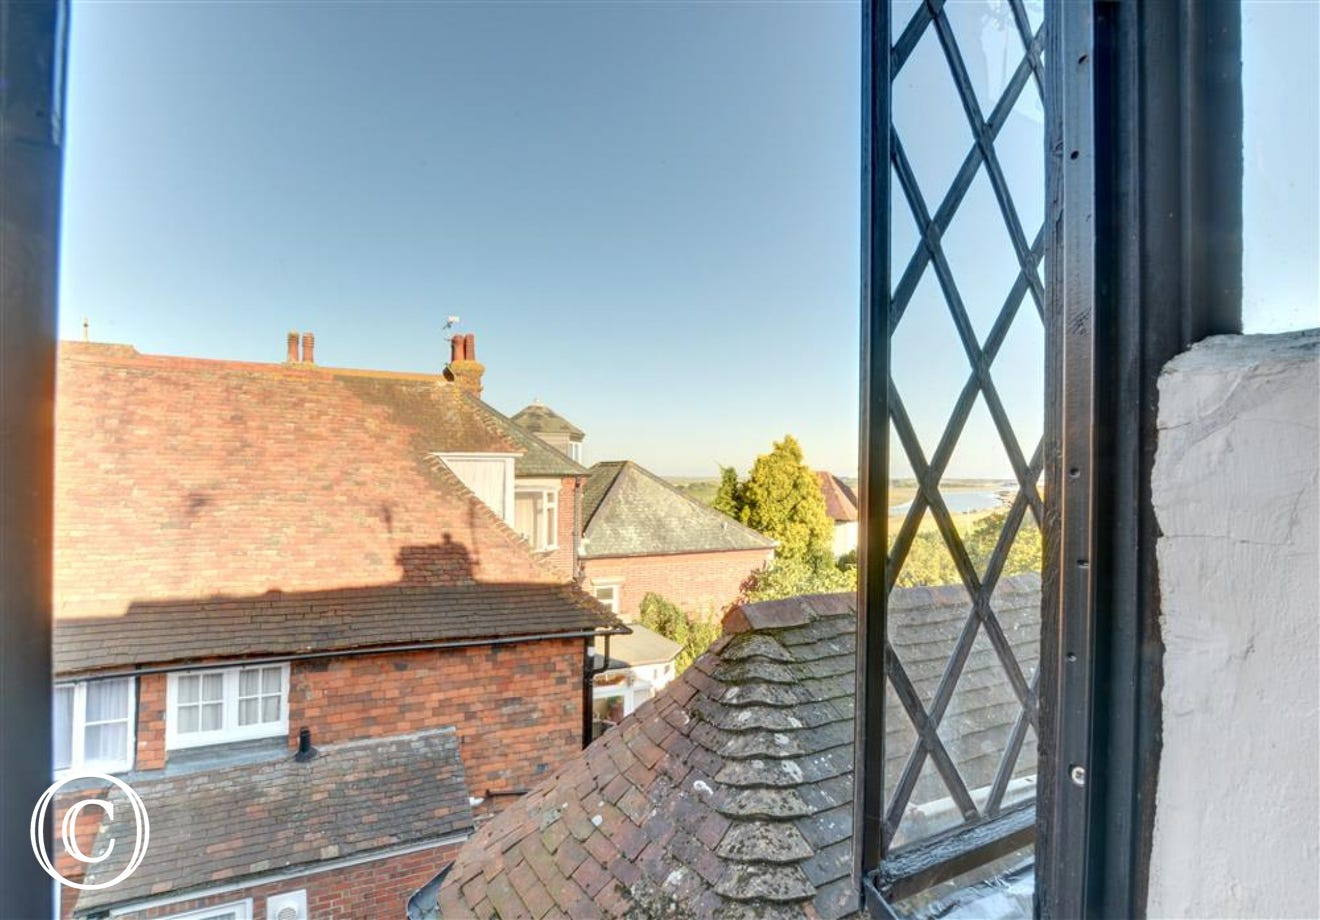 RH1002 - View from upstairs window